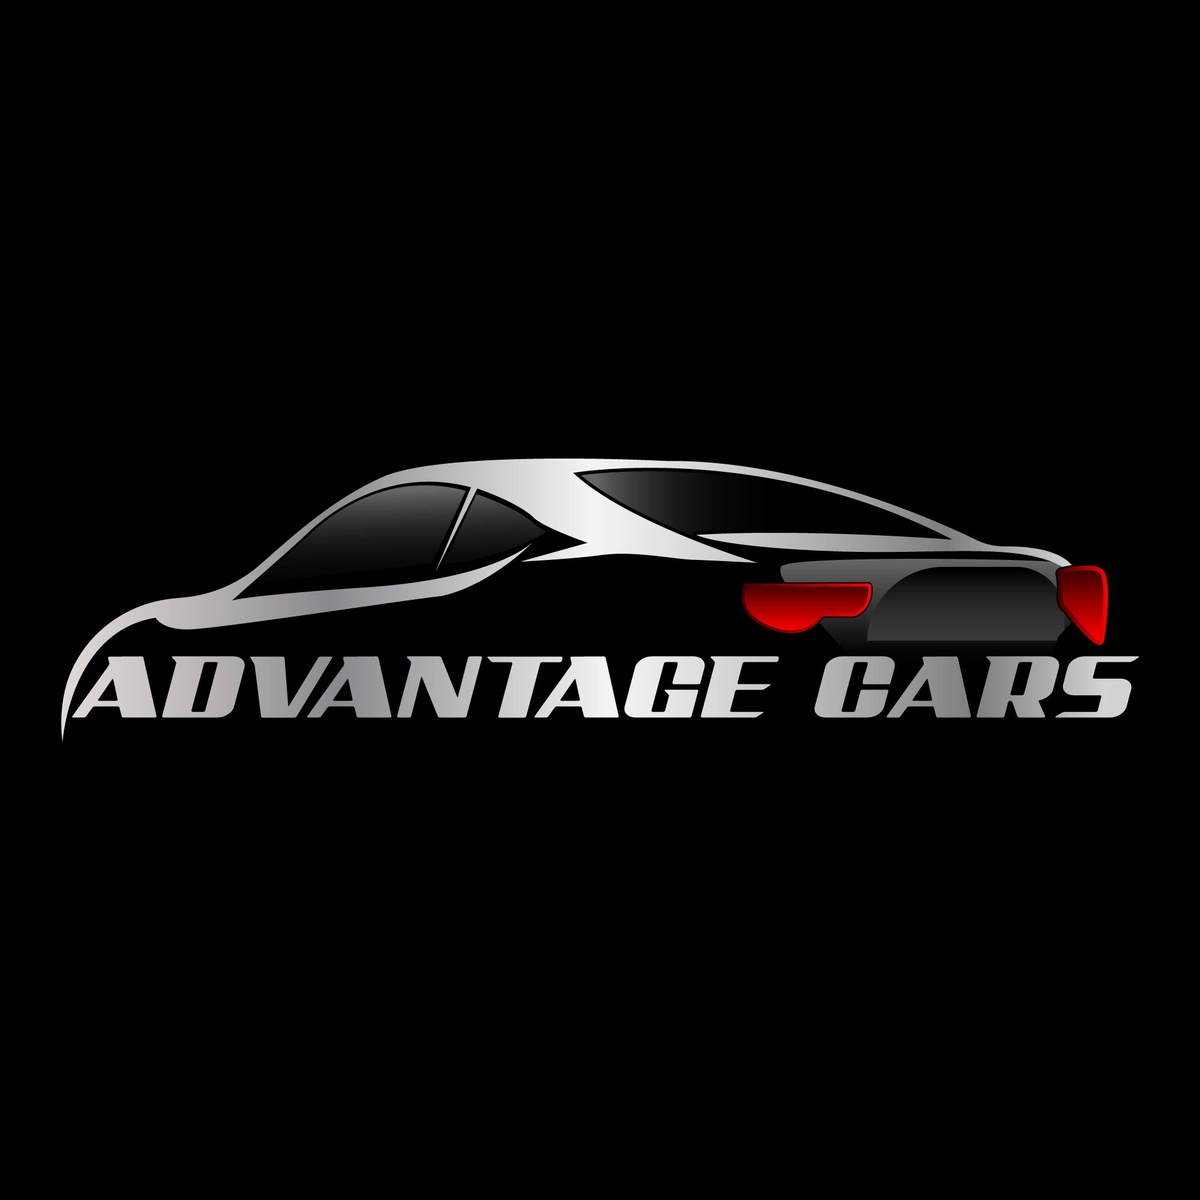 advantage cars houston tx read consumer reviews browse used and new cars for sale. Black Bedroom Furniture Sets. Home Design Ideas